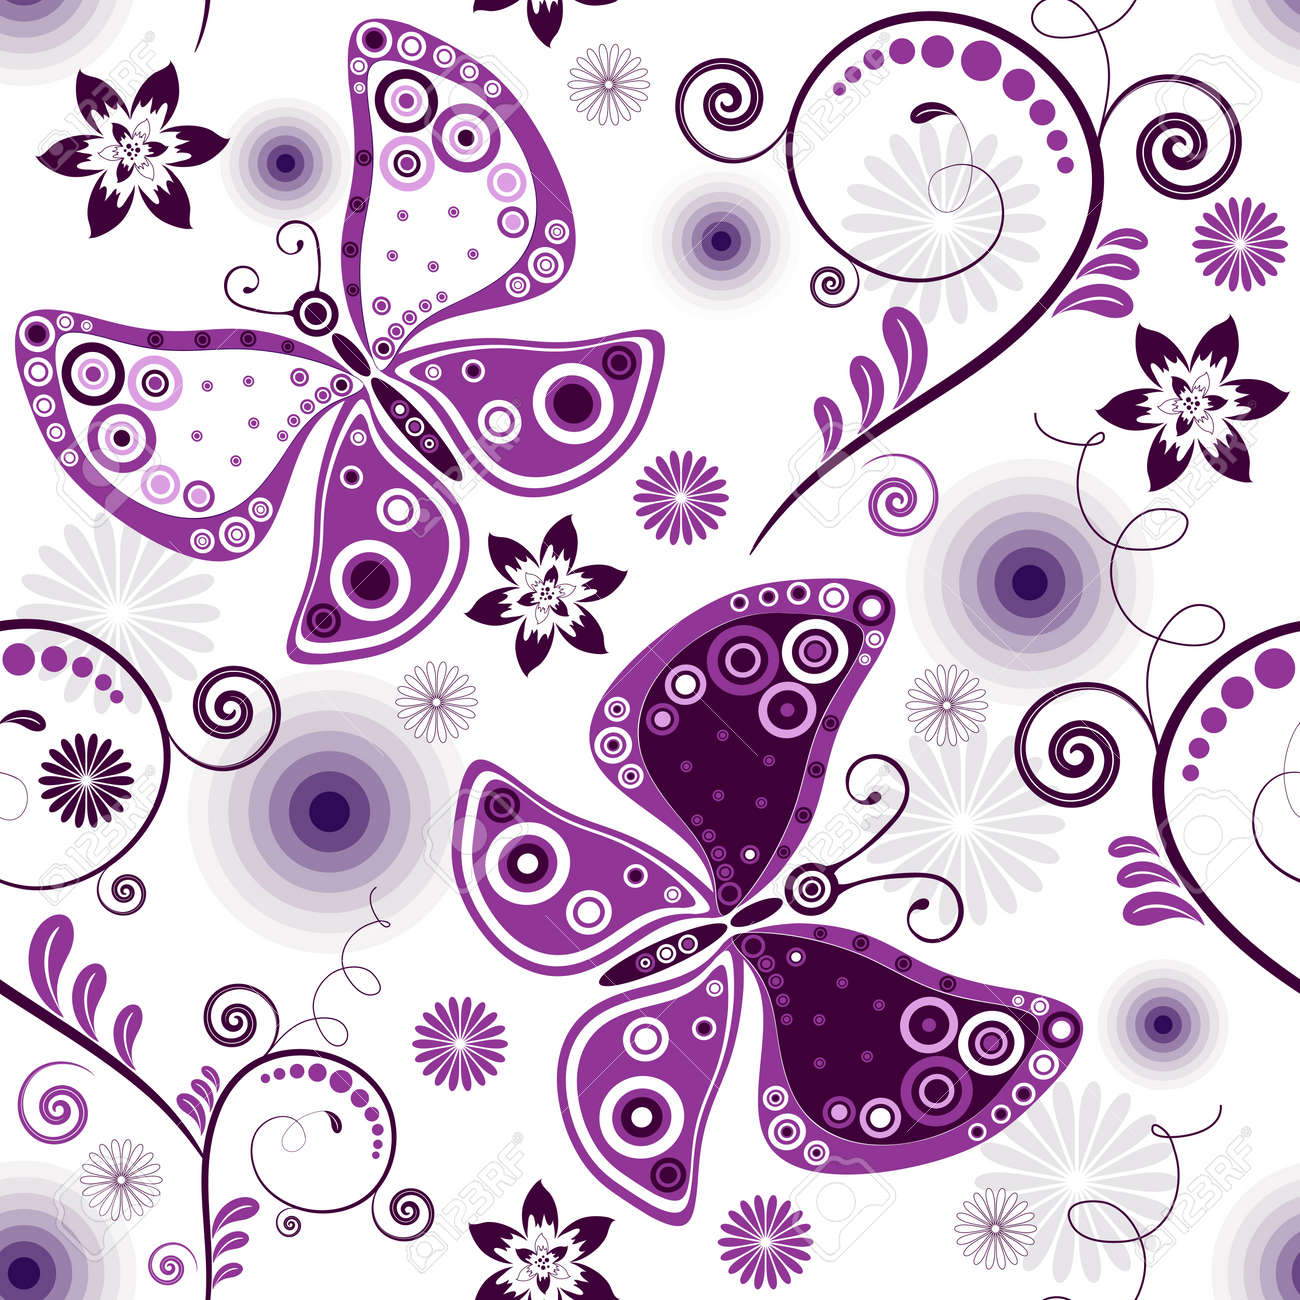 Repeating floral white pattern with violet flowers and butterflies Stock Vector - 7615616